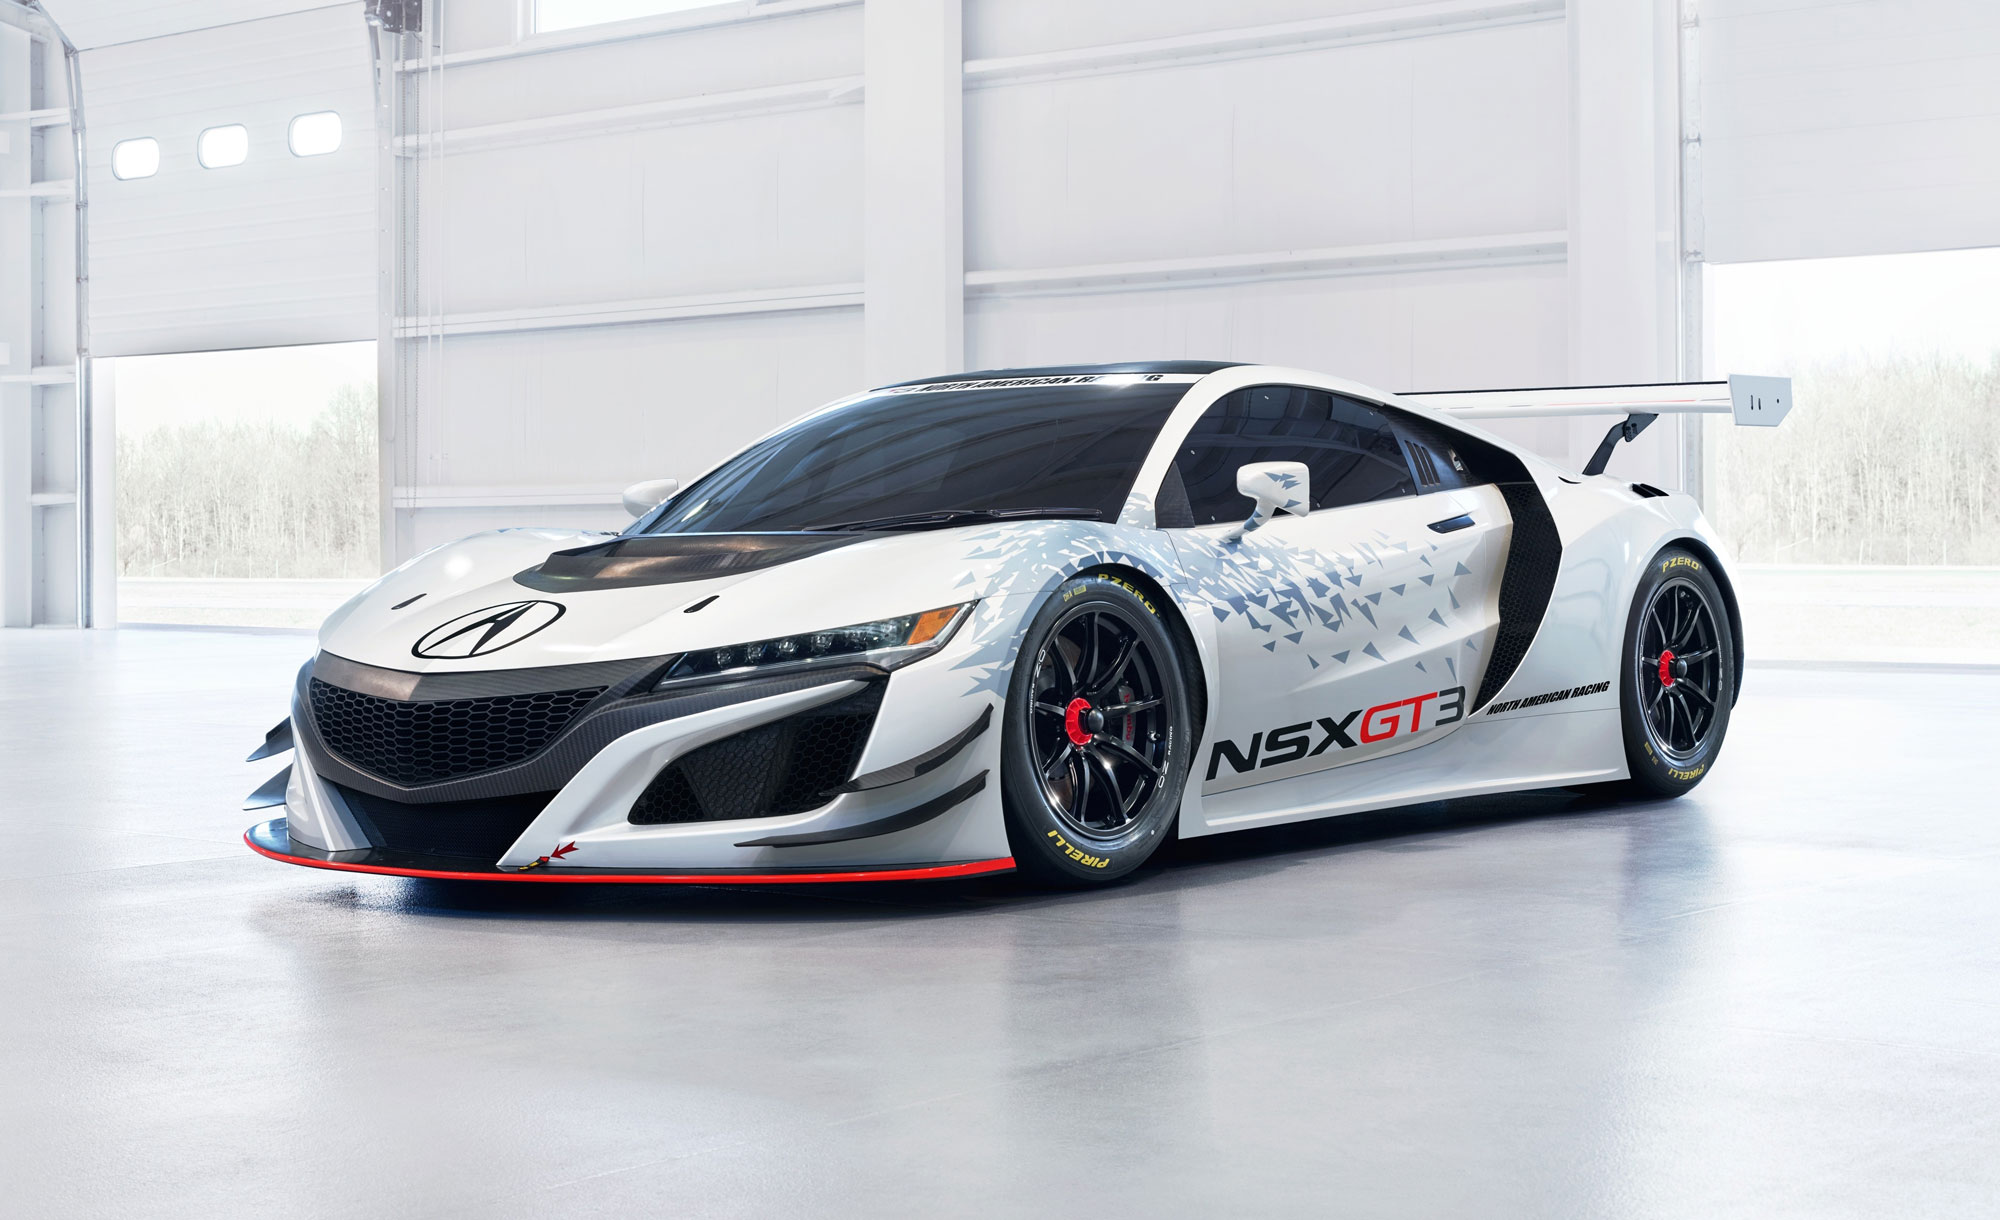 acura-nsx-gt3-race-car-iso-1